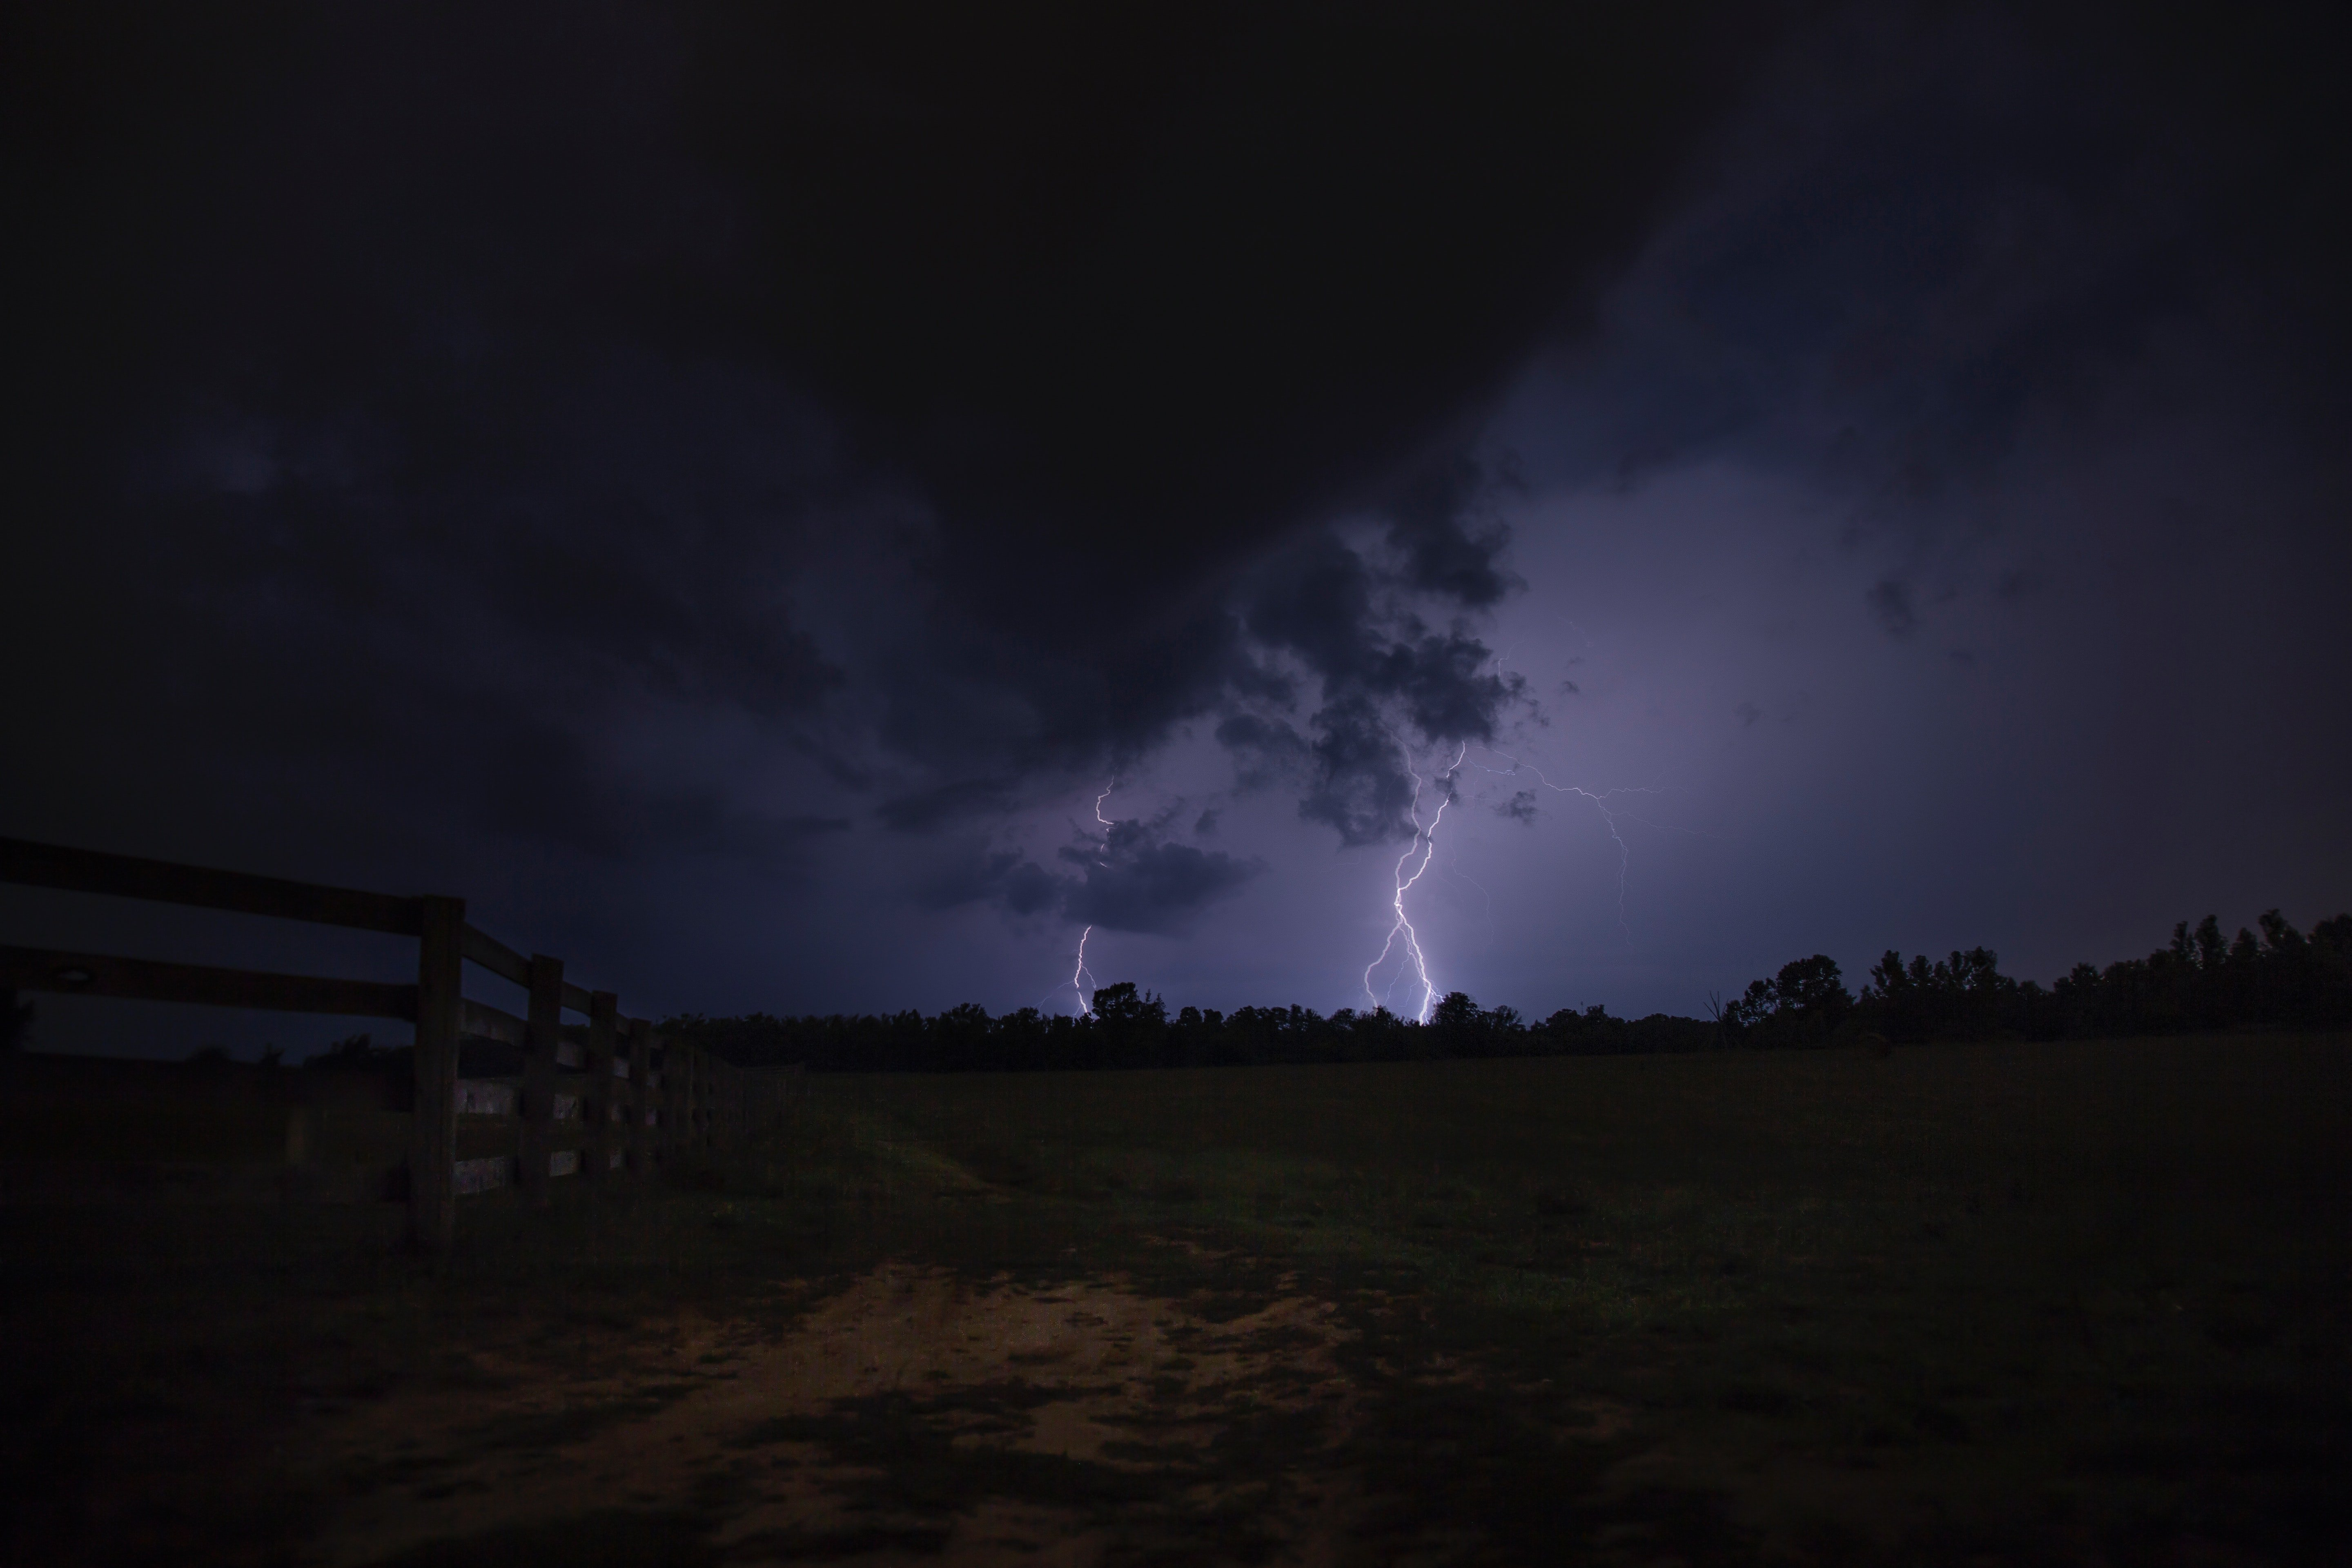 Photo - A photo of lightning strikes the ground during the night |  Source: Pexels